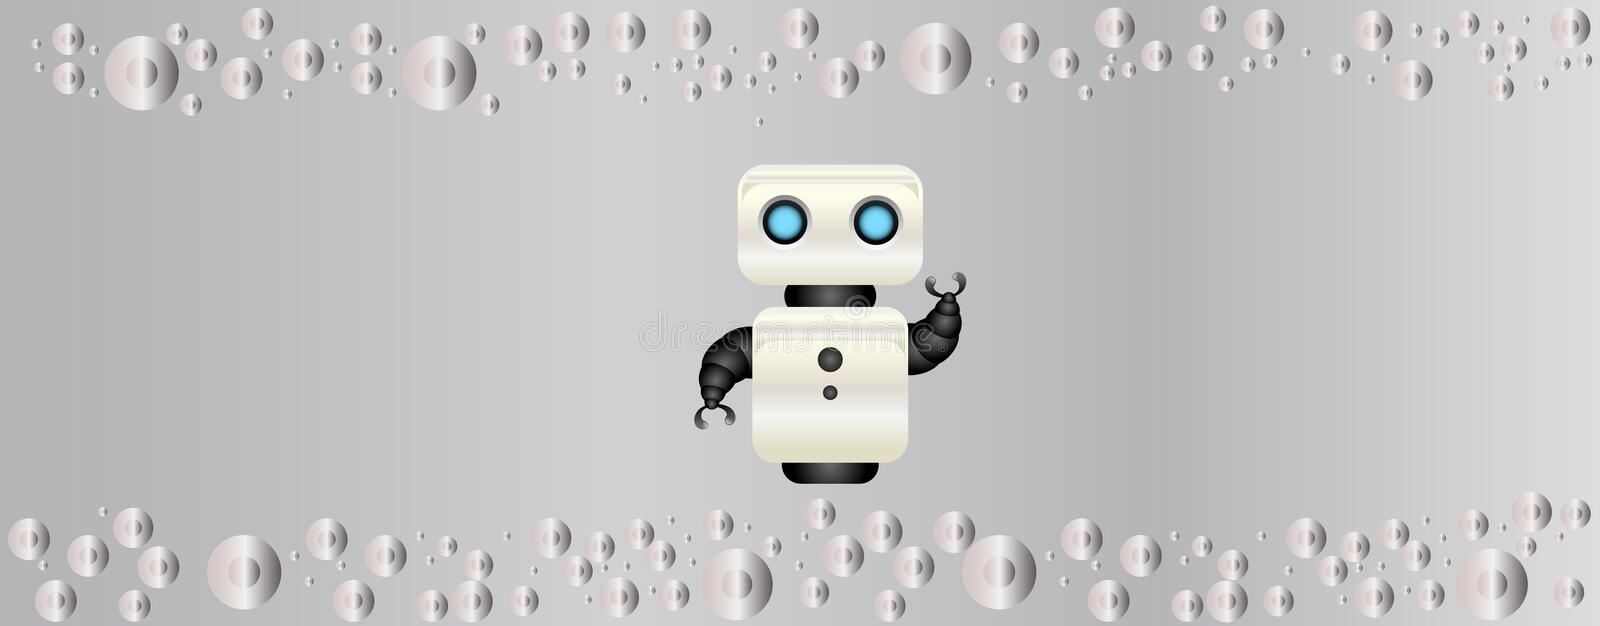 Tech background vector design.Artificial intelligence technology background vector design.Robot in the middle of the picture. royalty free illustration